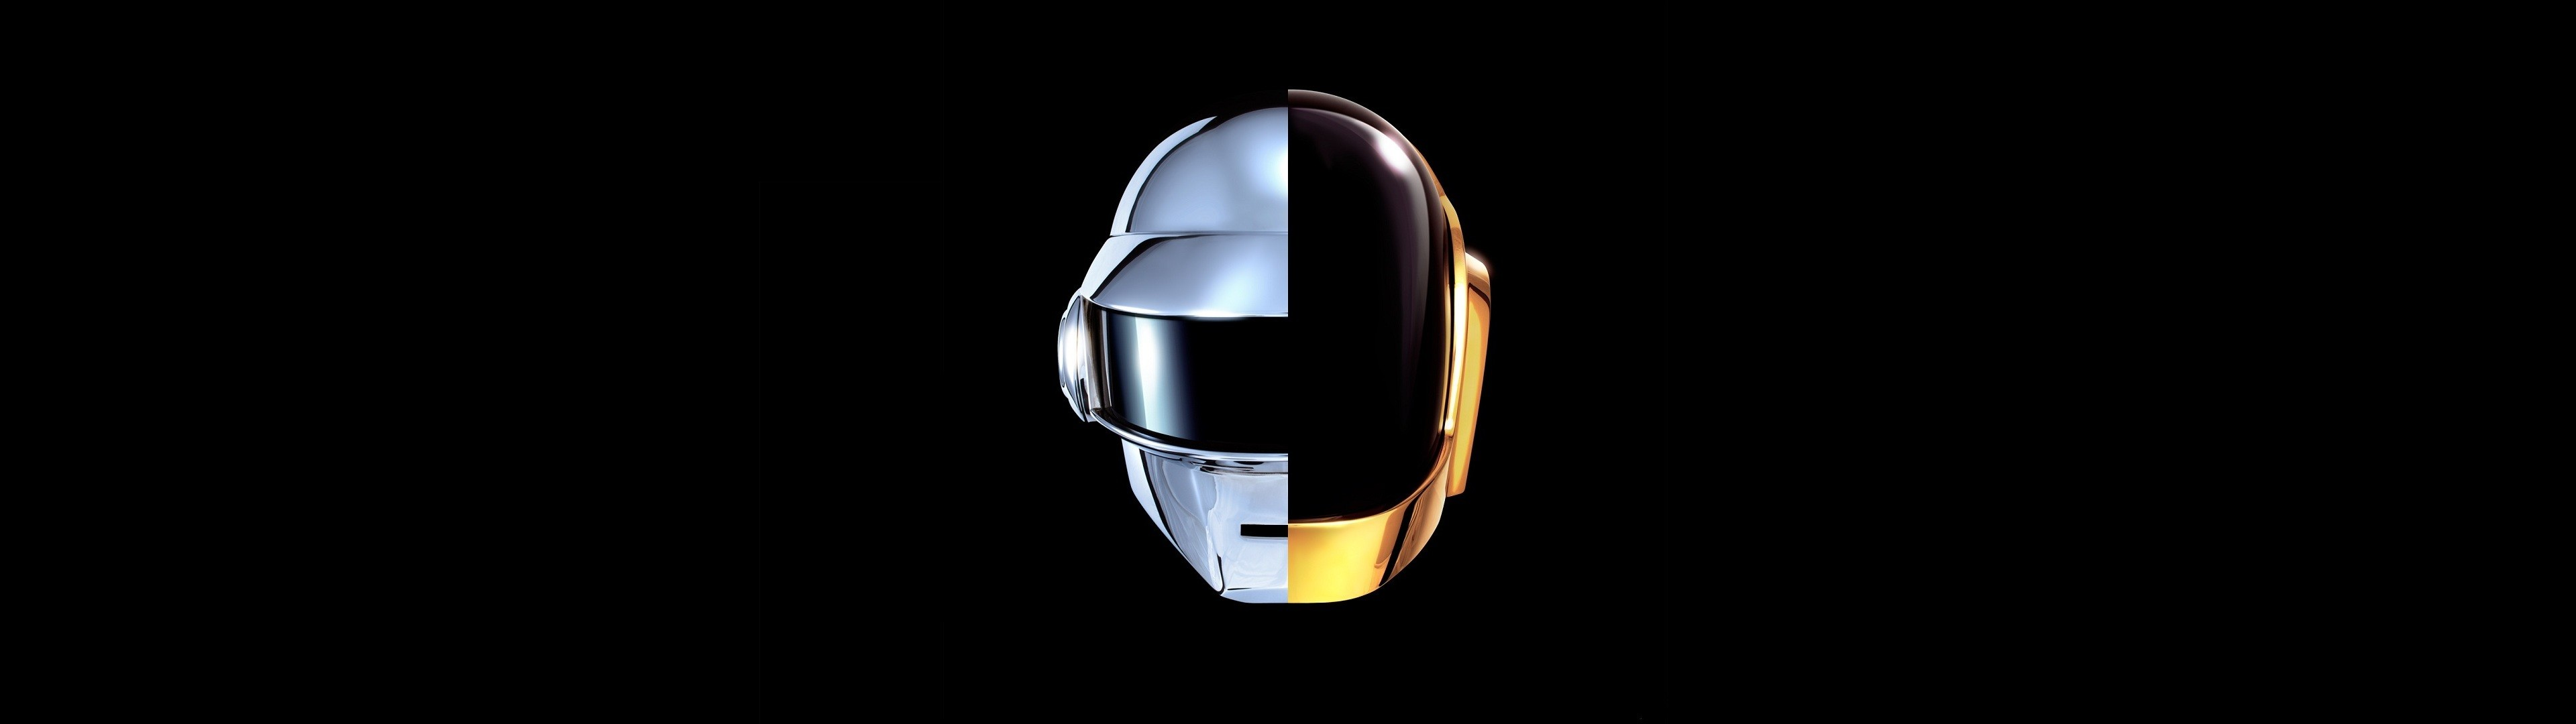 Daft Punk, HD Music, 4k Wallpapers, Images, Backgrounds ...